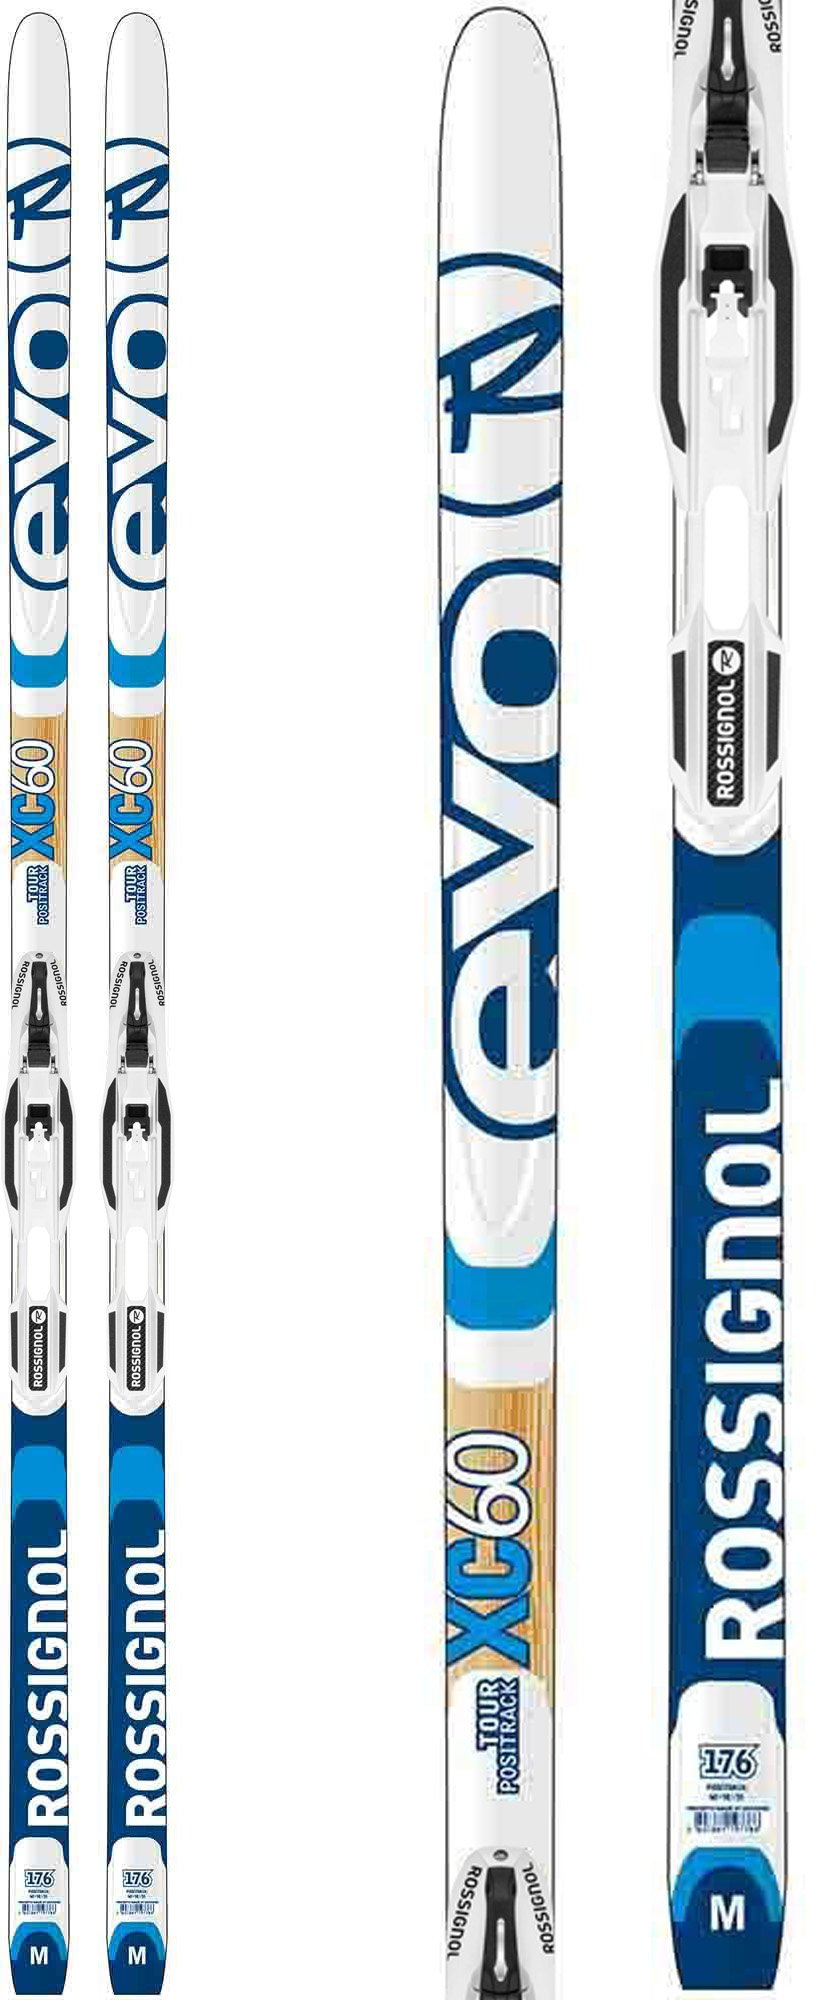 Rossignol Evo Tour 60 IFP Positrack XC Skis w/Control Step in Bindings Sz 186cm by Rossignol